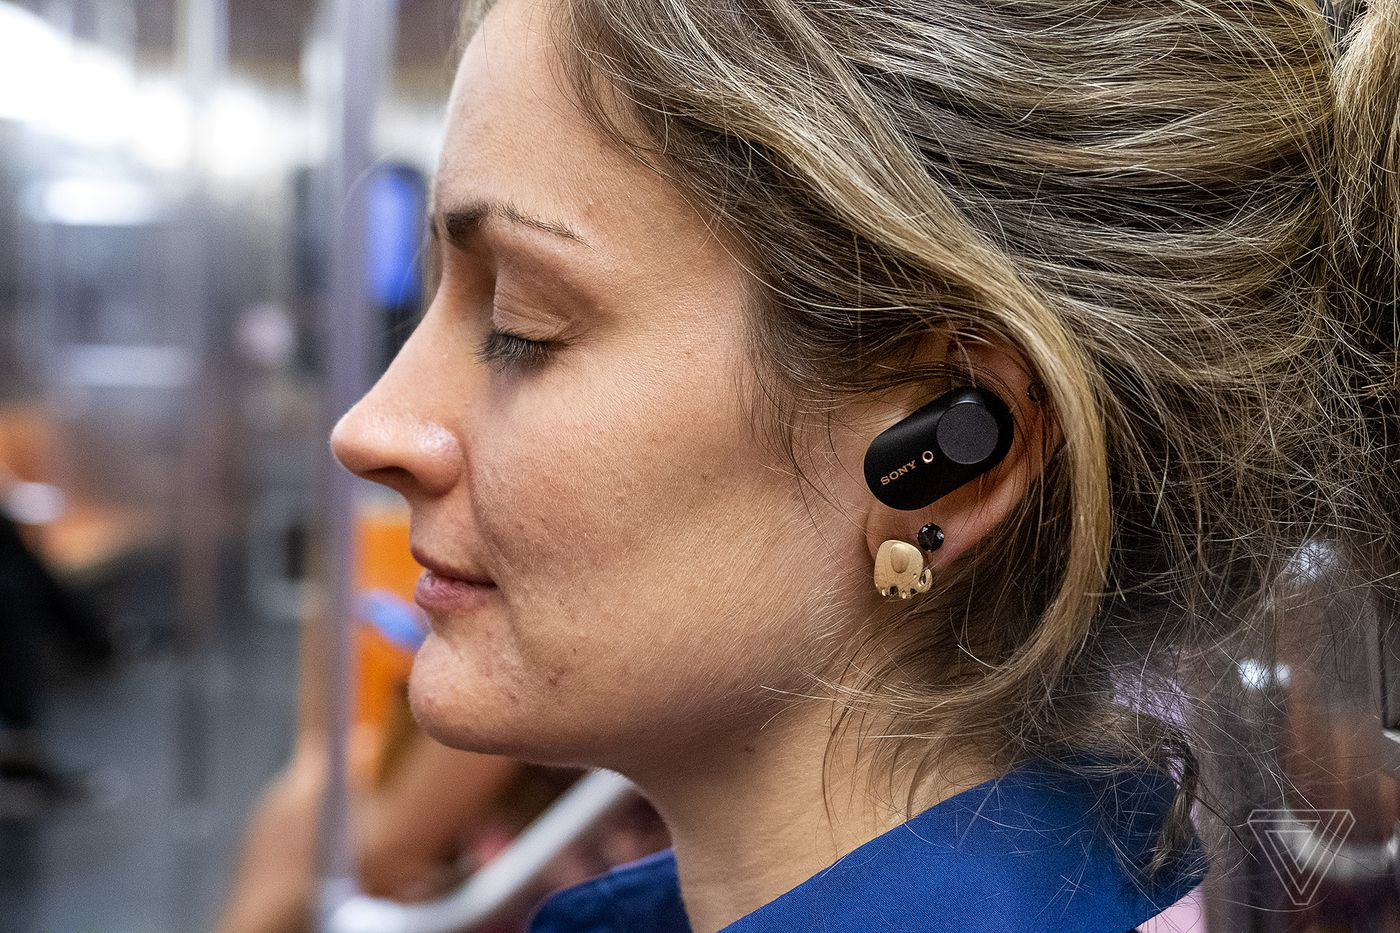 Sony Wf 1000xm3 Noise Canceling Earbuds Review The Verge